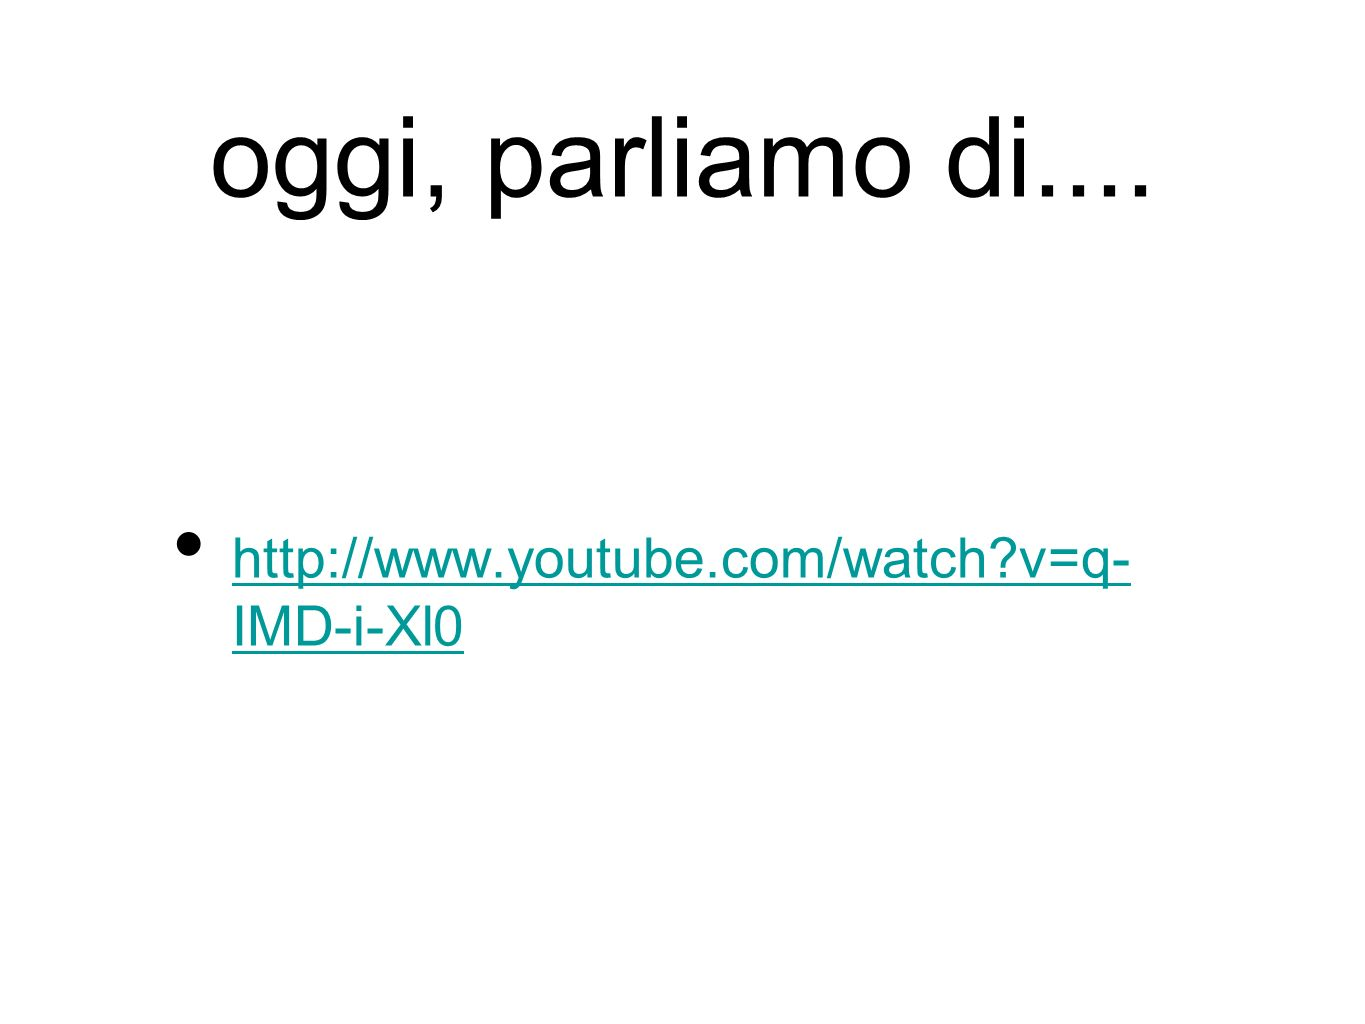 oggi, parliamo di.... http://www.youtube.com/watch v=q- IMD-i-Xl0